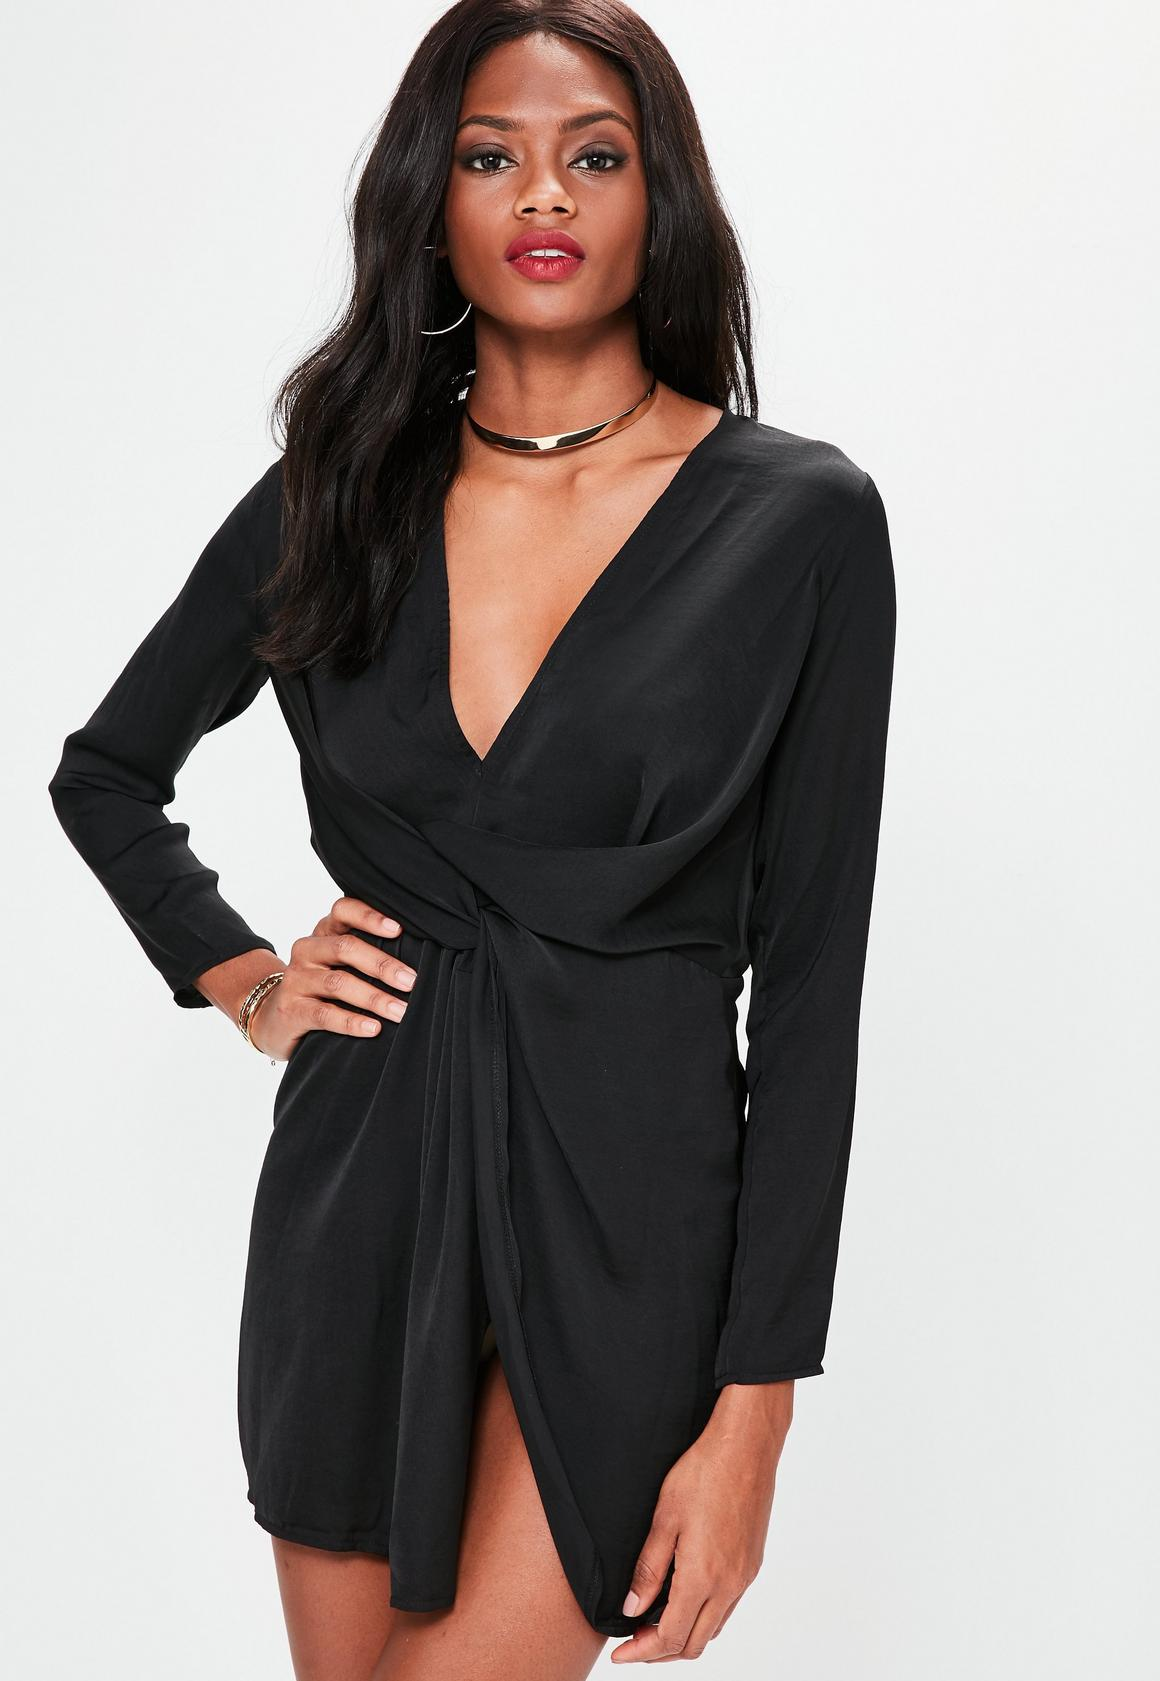 Black dress mini - Black Satin Wrap Mini Dress Black Satin Wrap Mini Dress